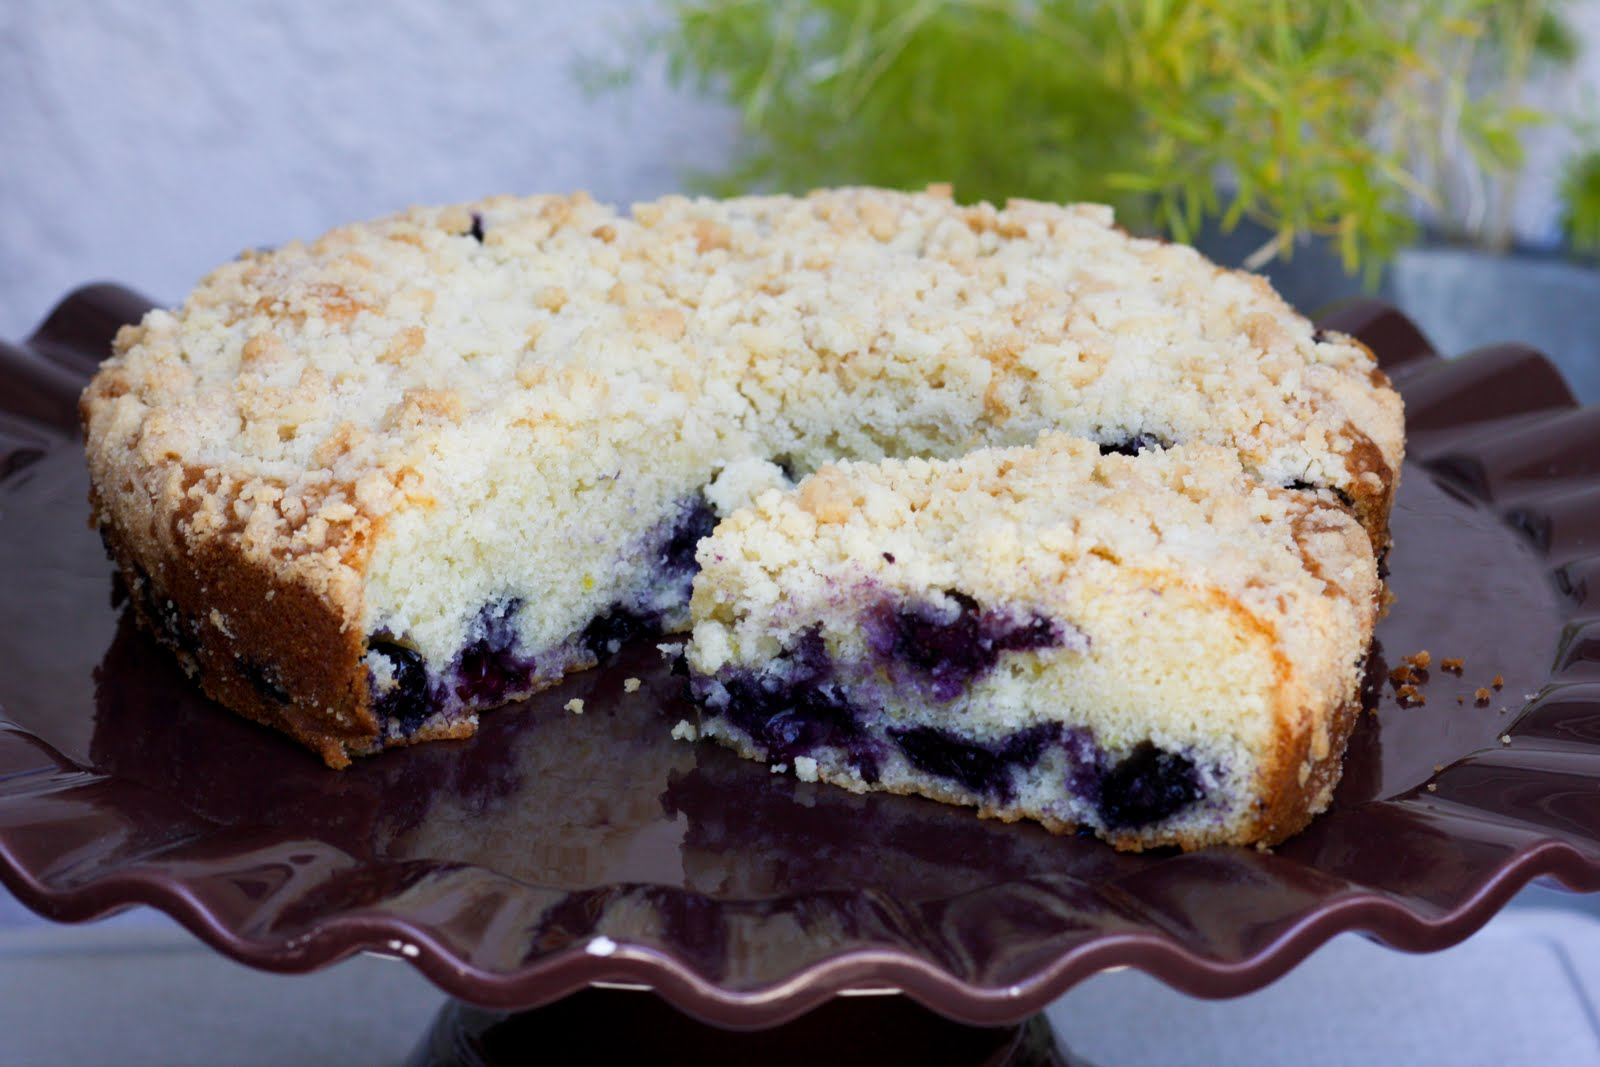 Download image Blueberry Crumb Cake PC, Android, iPhone and iPad ...